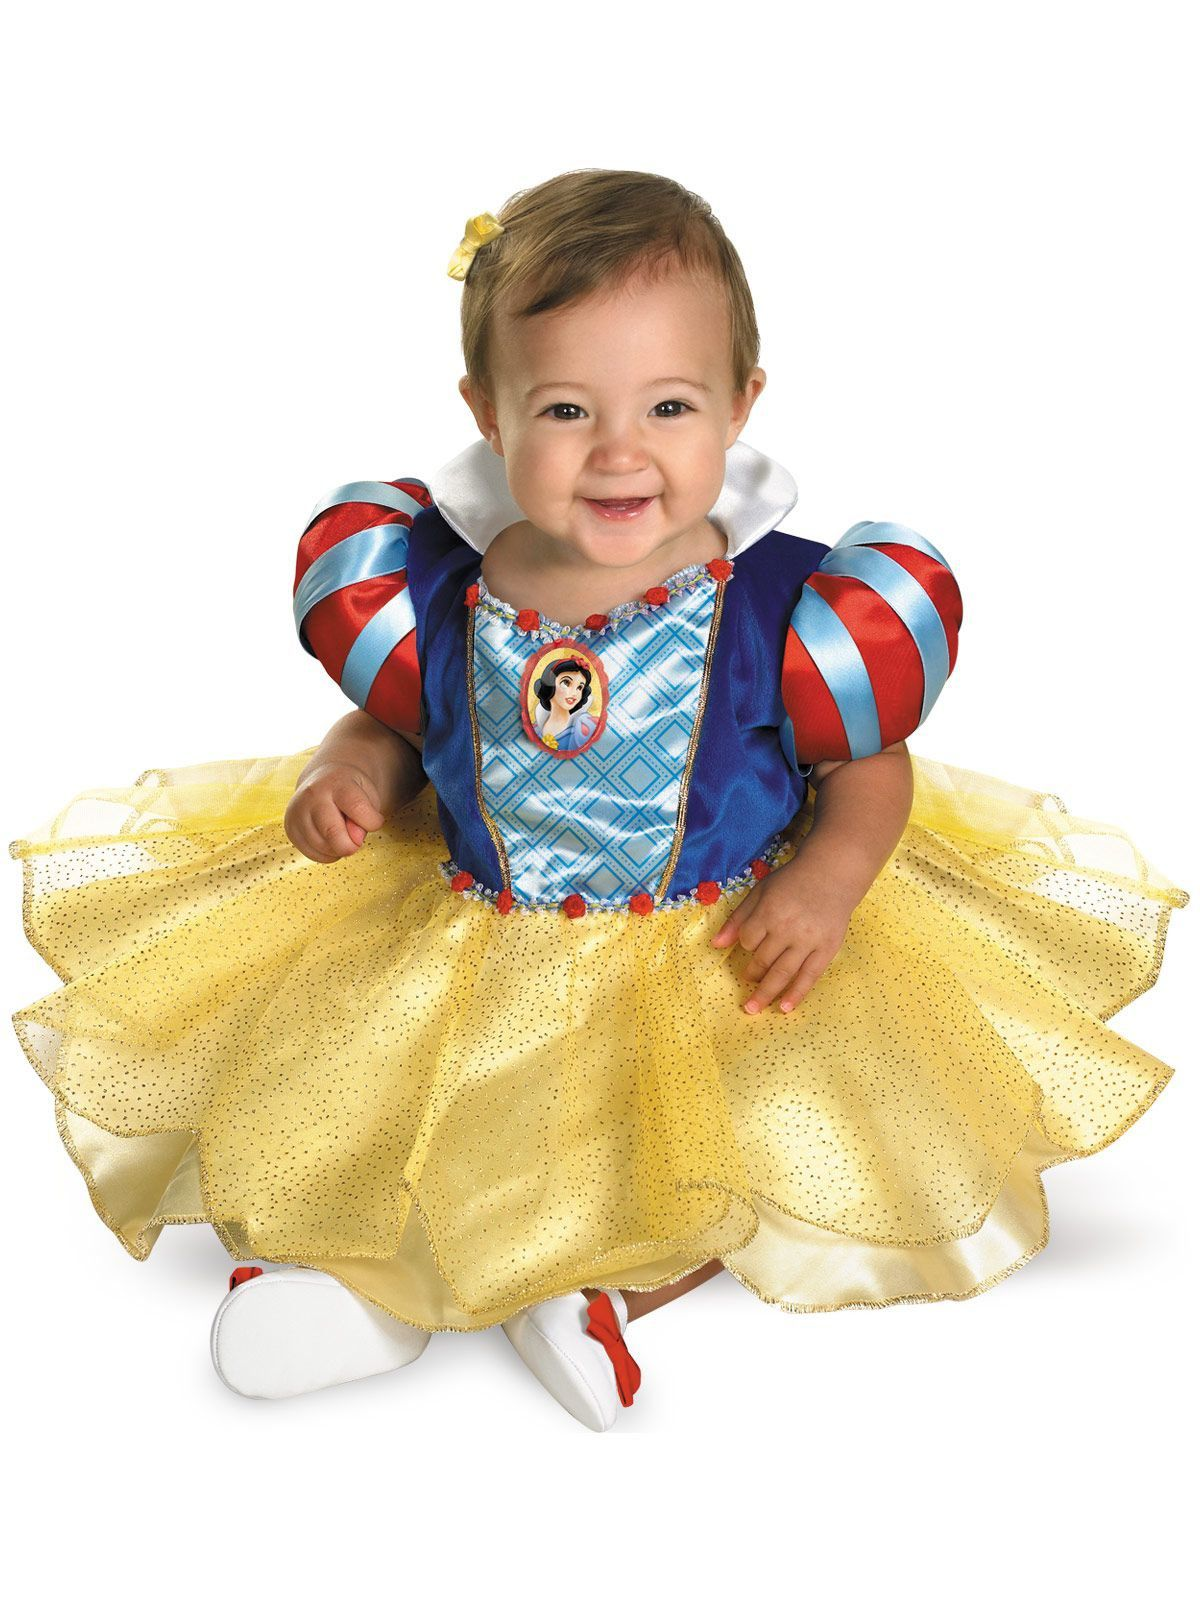 cc22a1e18f31 Disneys Infant Snow White Ballerina Costume Sc 1 St Wholesale Halloween  Costumes